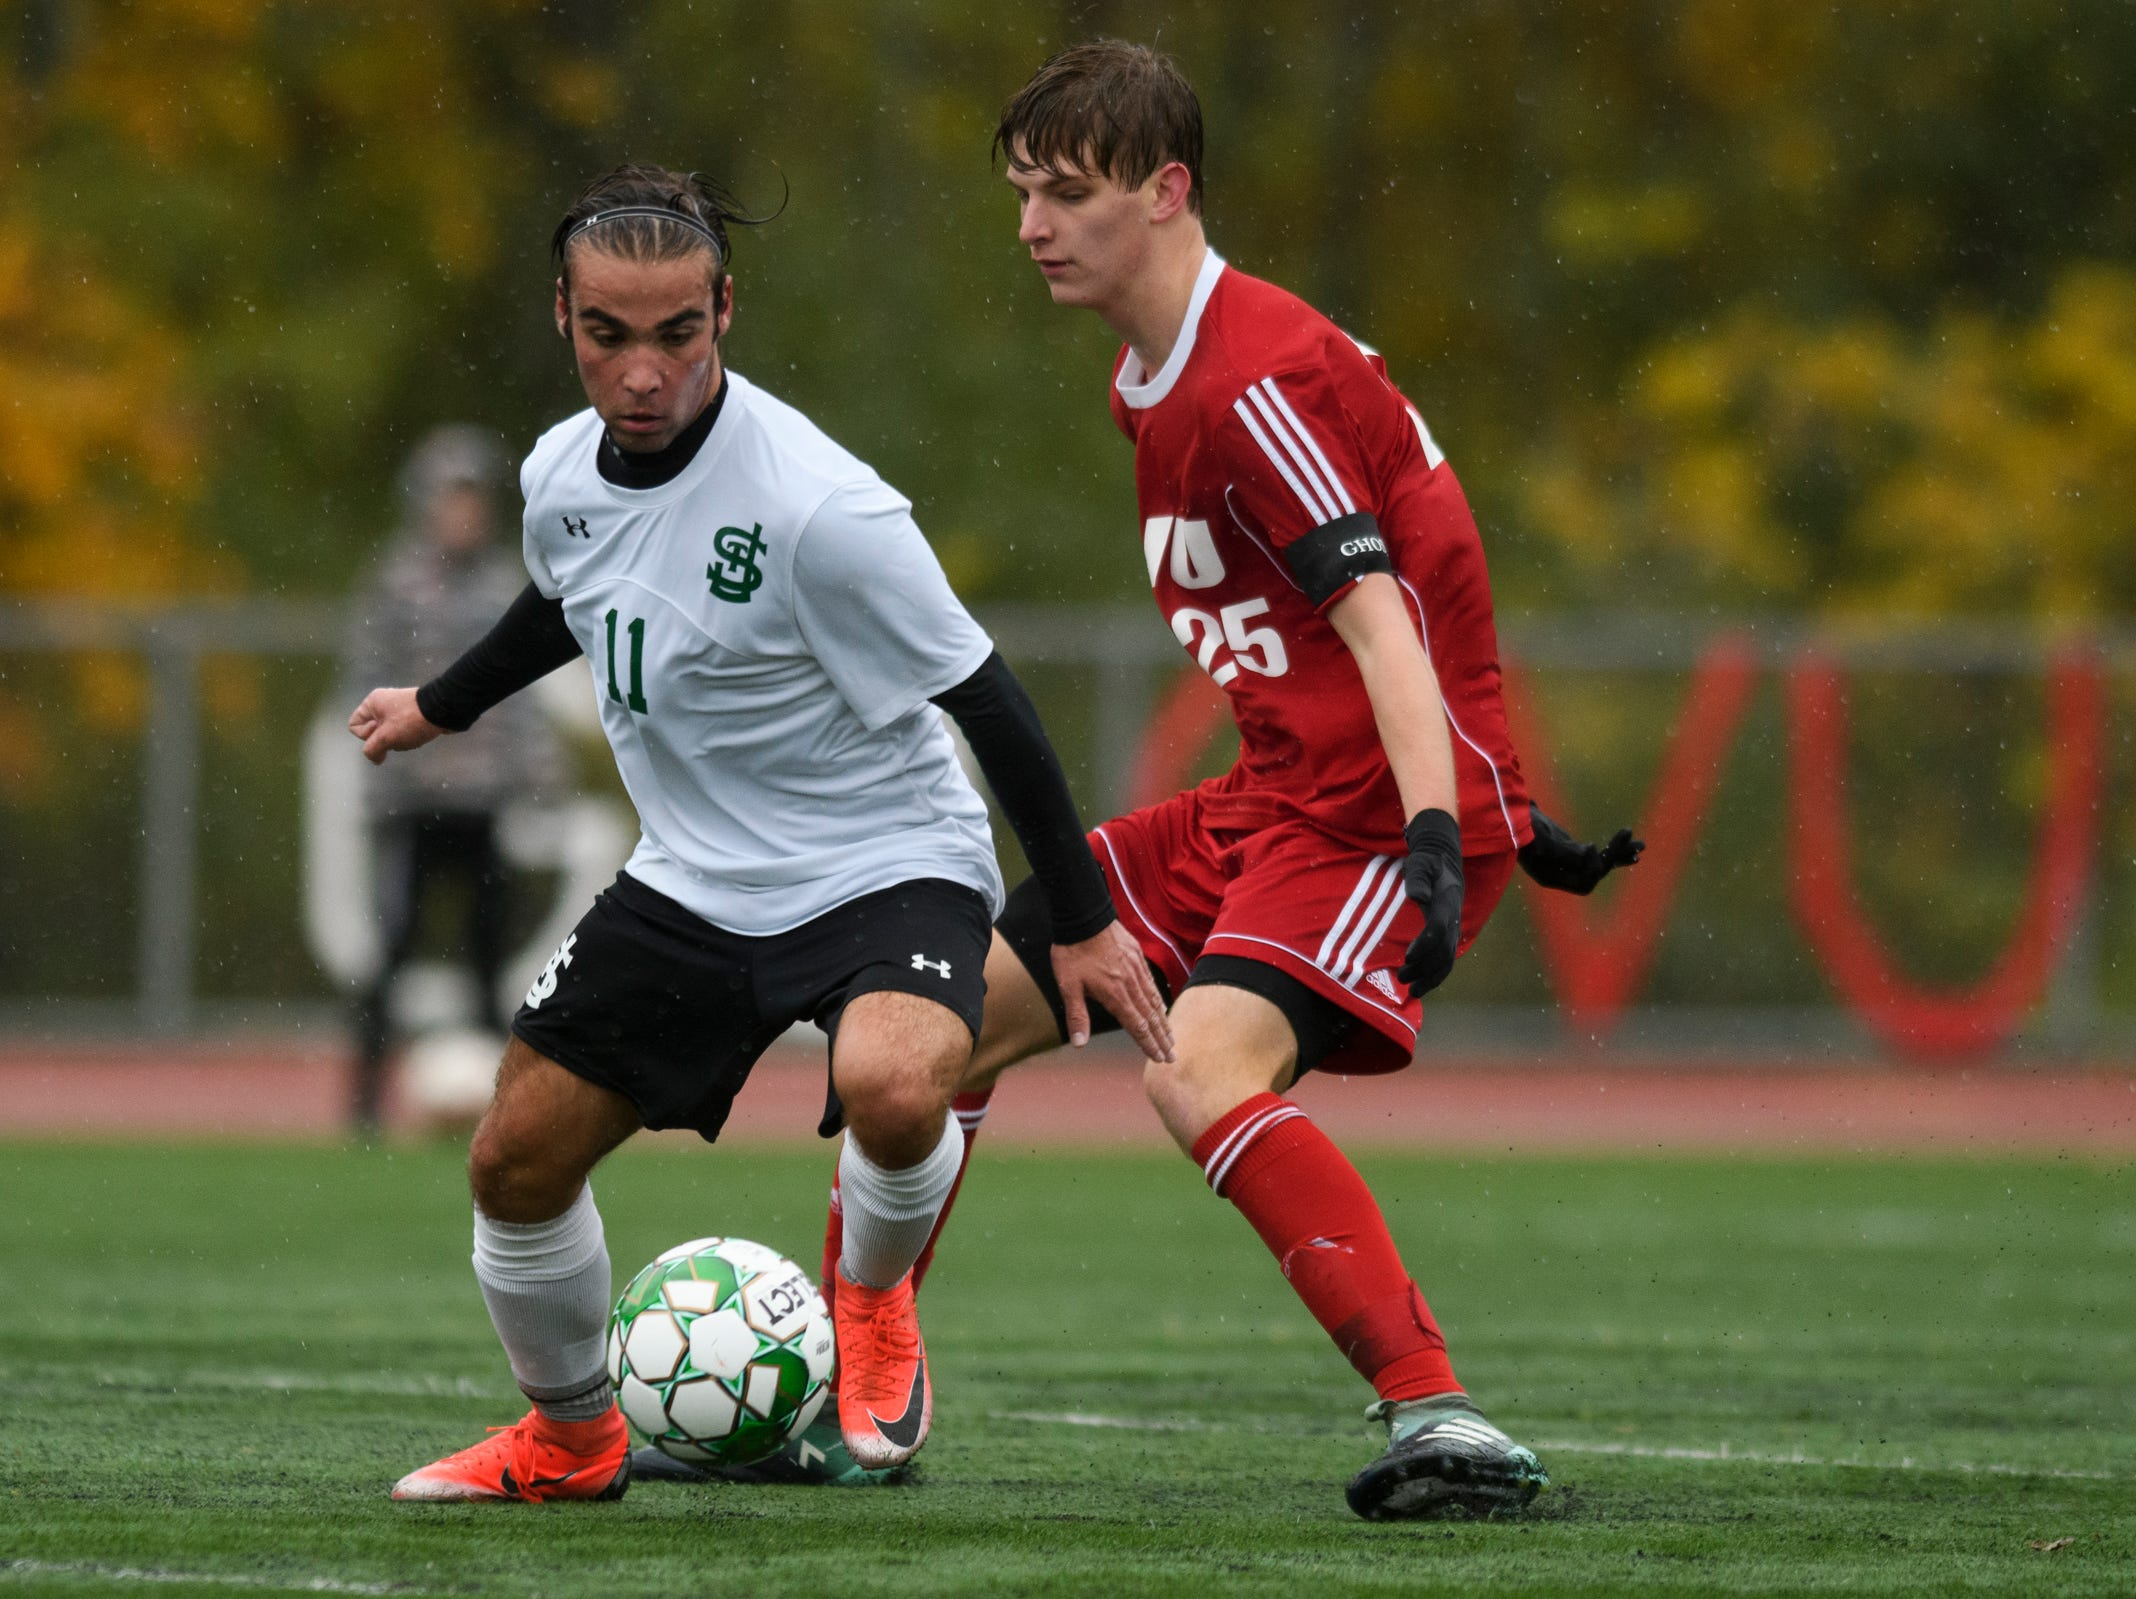 St. Johnsbury's Pablo Gonzales-Rotger (11) plays the ball past CVU's Cullen Sweet (25) during the Division I boys soccer championship game between the St. Johnsbury Hilltoppers and the Champlain Valley Union Redhawks at Buck Hard Field on Saturday morning November 3, 2018 in Burlington.